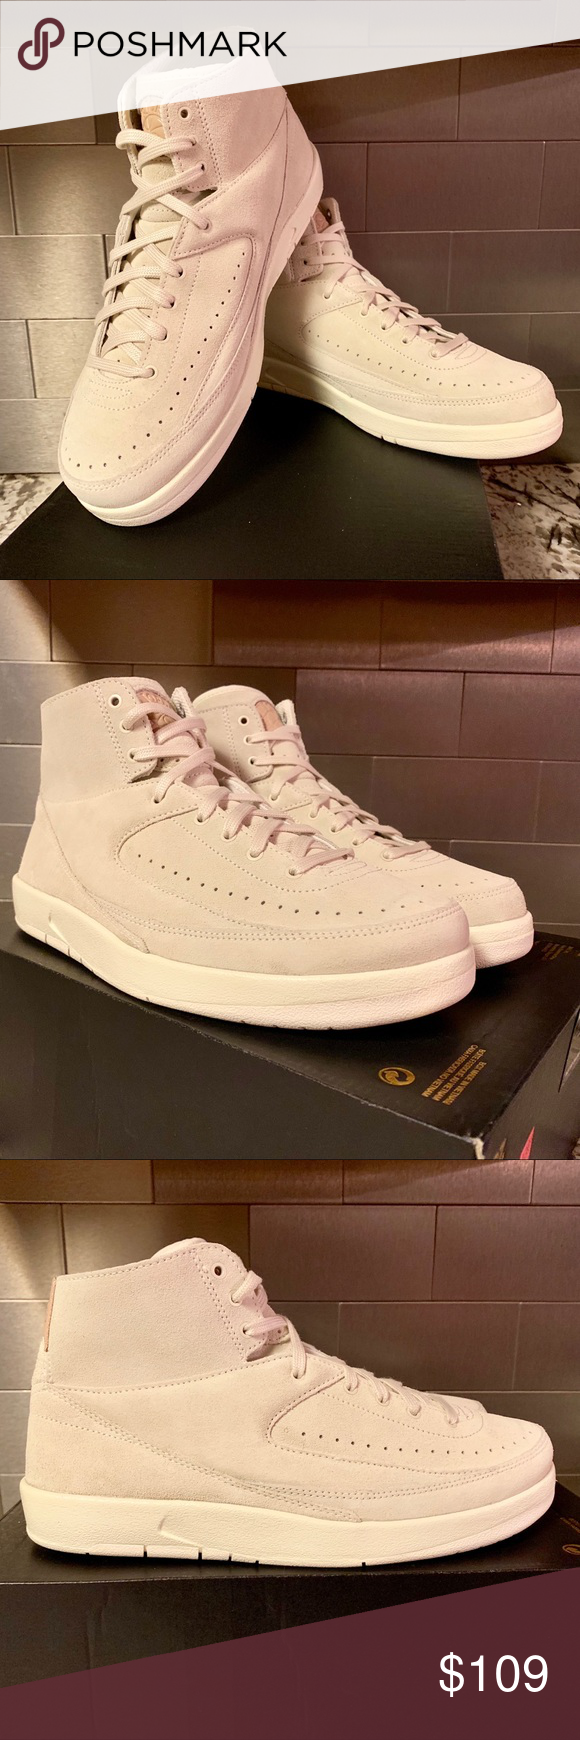 info for b9760 460e3 Nike Air Jordan 2 Retro 897521-100 BN 💯 authentic ...